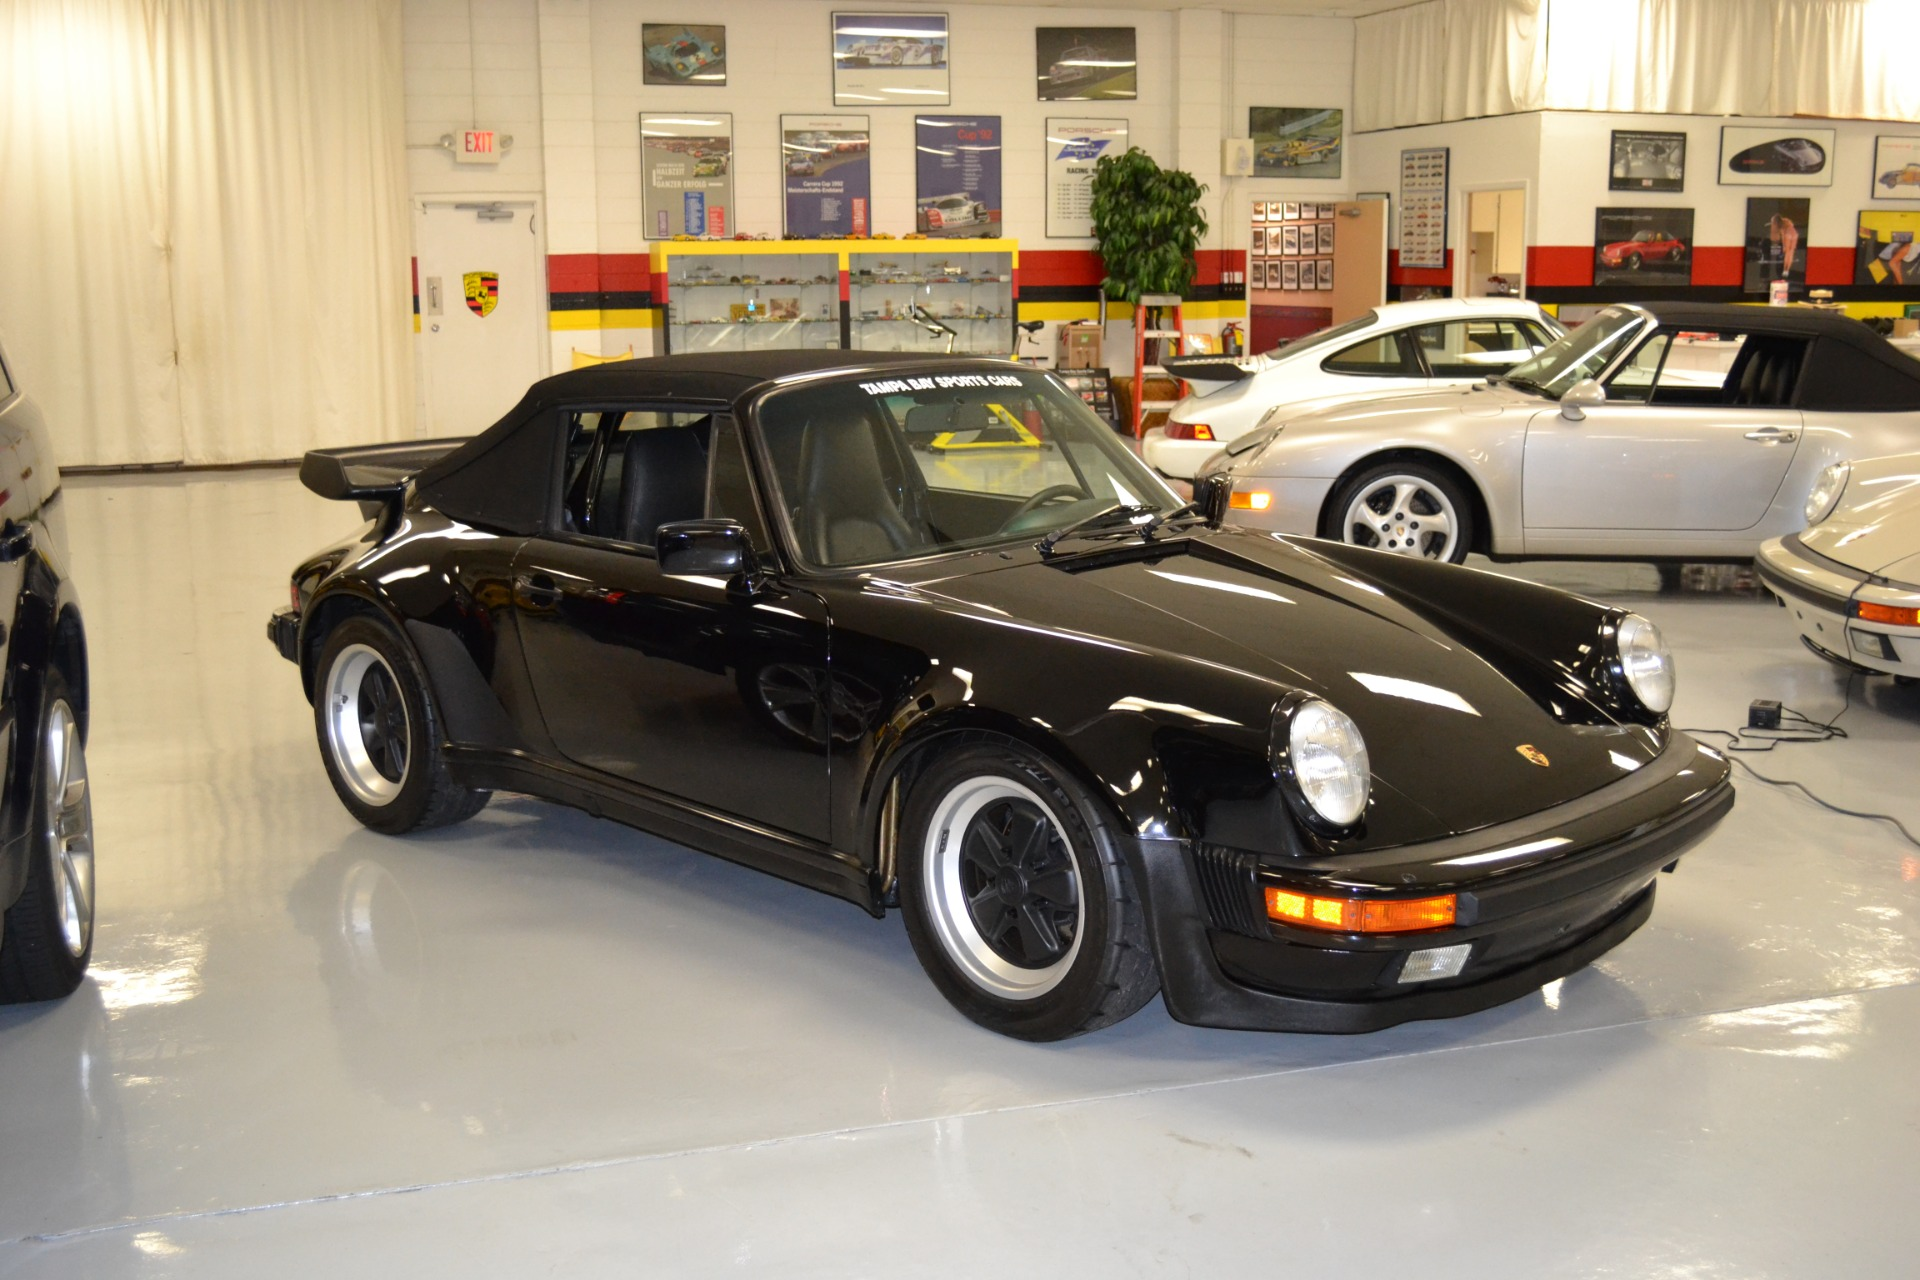 Used 1989 Porsche 930/911 Carrera Turbo | Pinellas Park, FL